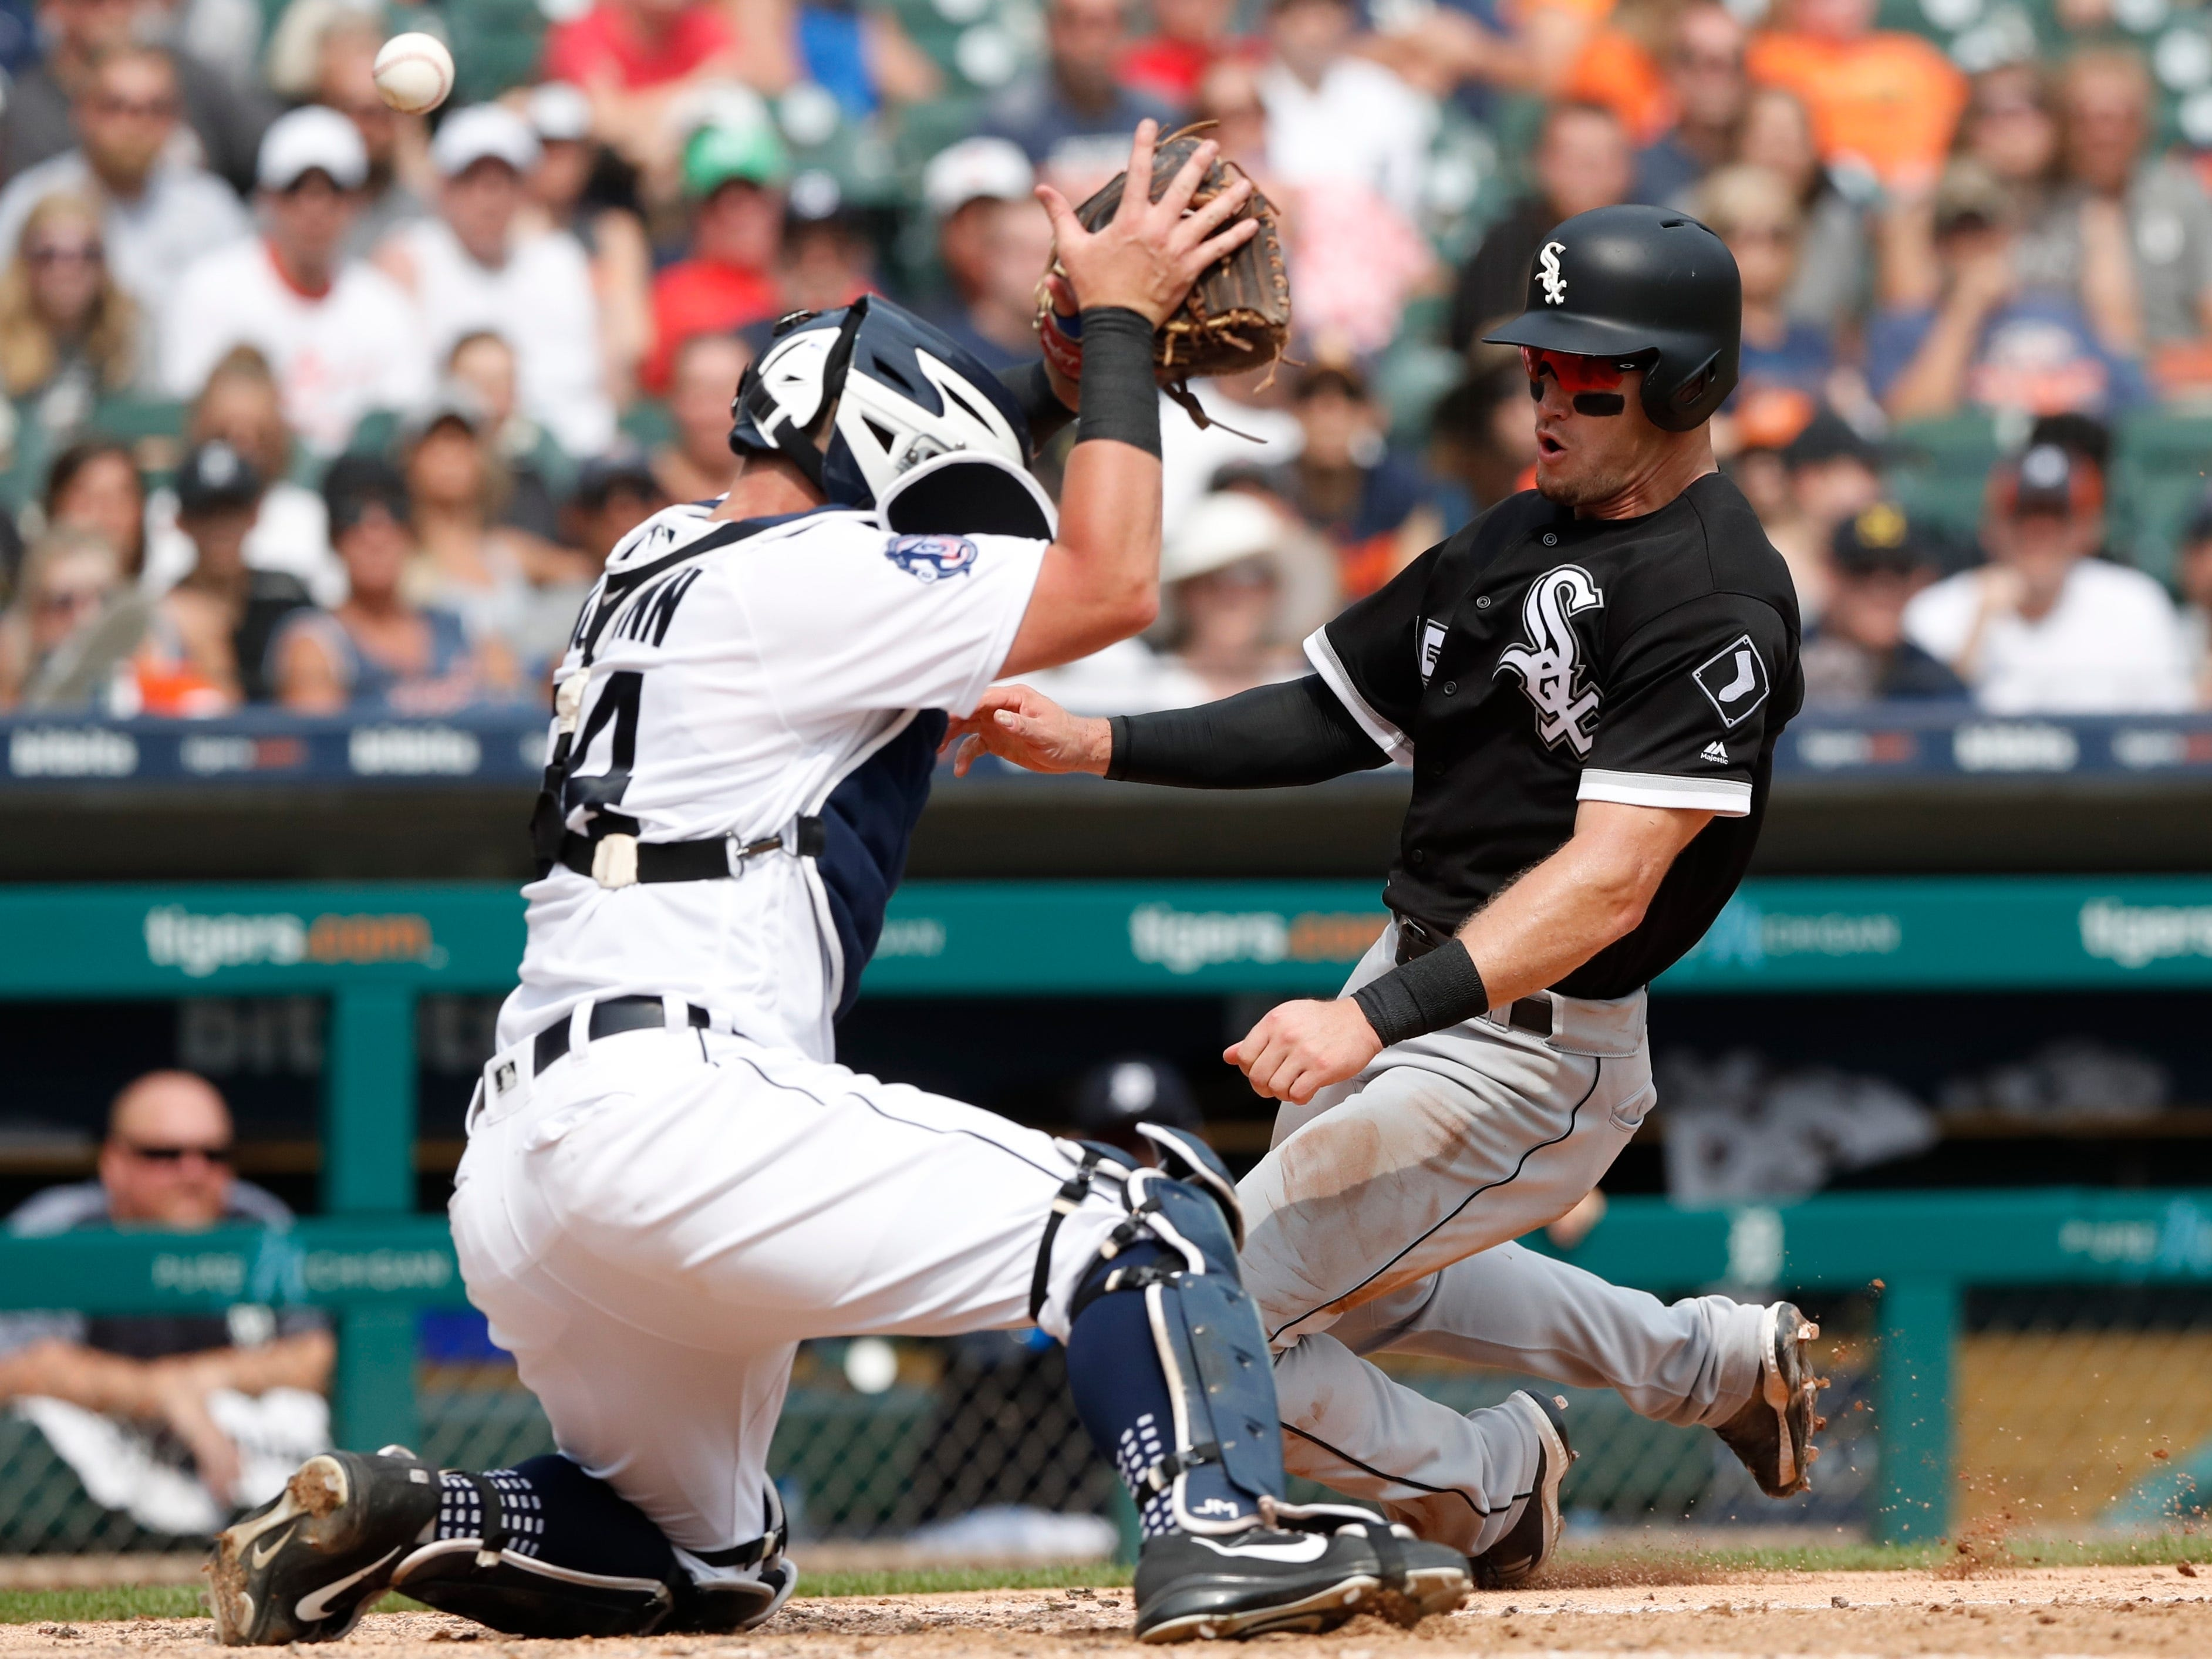 Detroit Tigers catcher James McCann reaches but misses a high throw as Chicago White Sox's Adam Engel safely slides to score seventh inning.